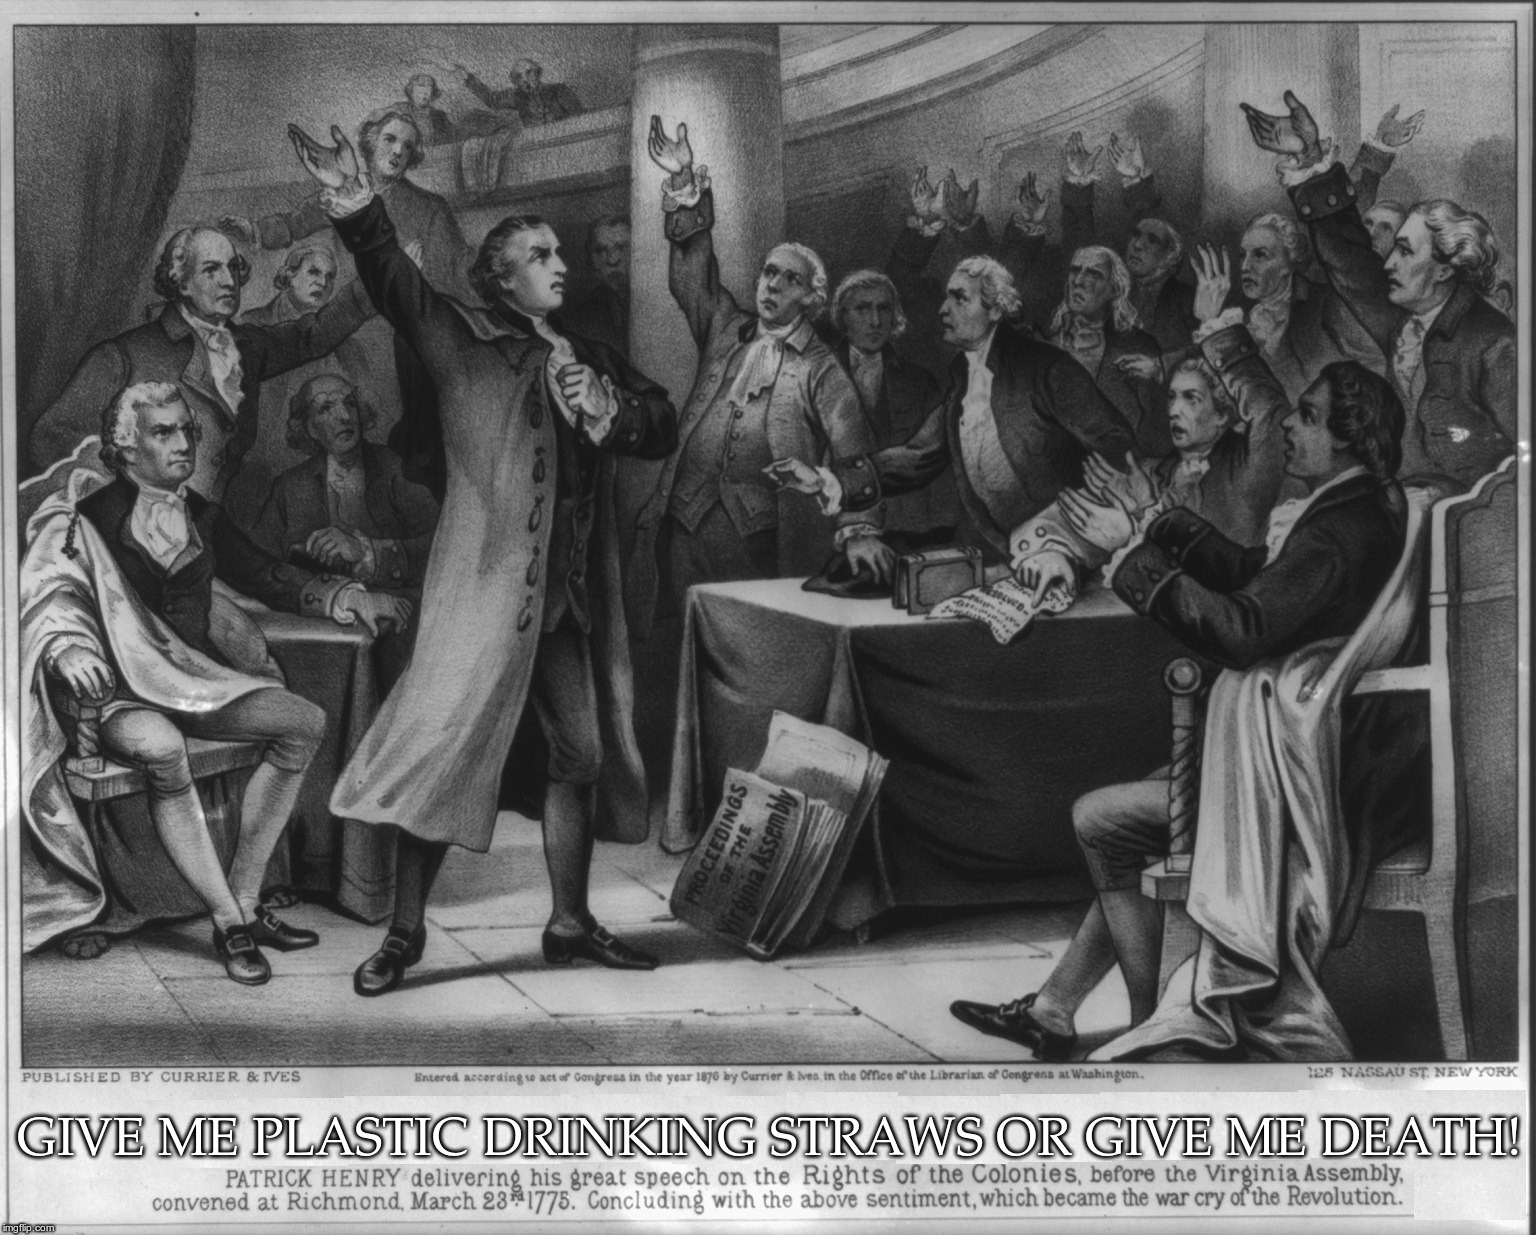 Give me plastic drinking straws or give me death! | GIVE ME PLASTIC DRINKING STRAWS OR GIVE ME DEATH! | image tagged in give me liberty or give me death,plastic drinking straws,plastic straws,give me death,patrick henry | made w/ Imgflip meme maker